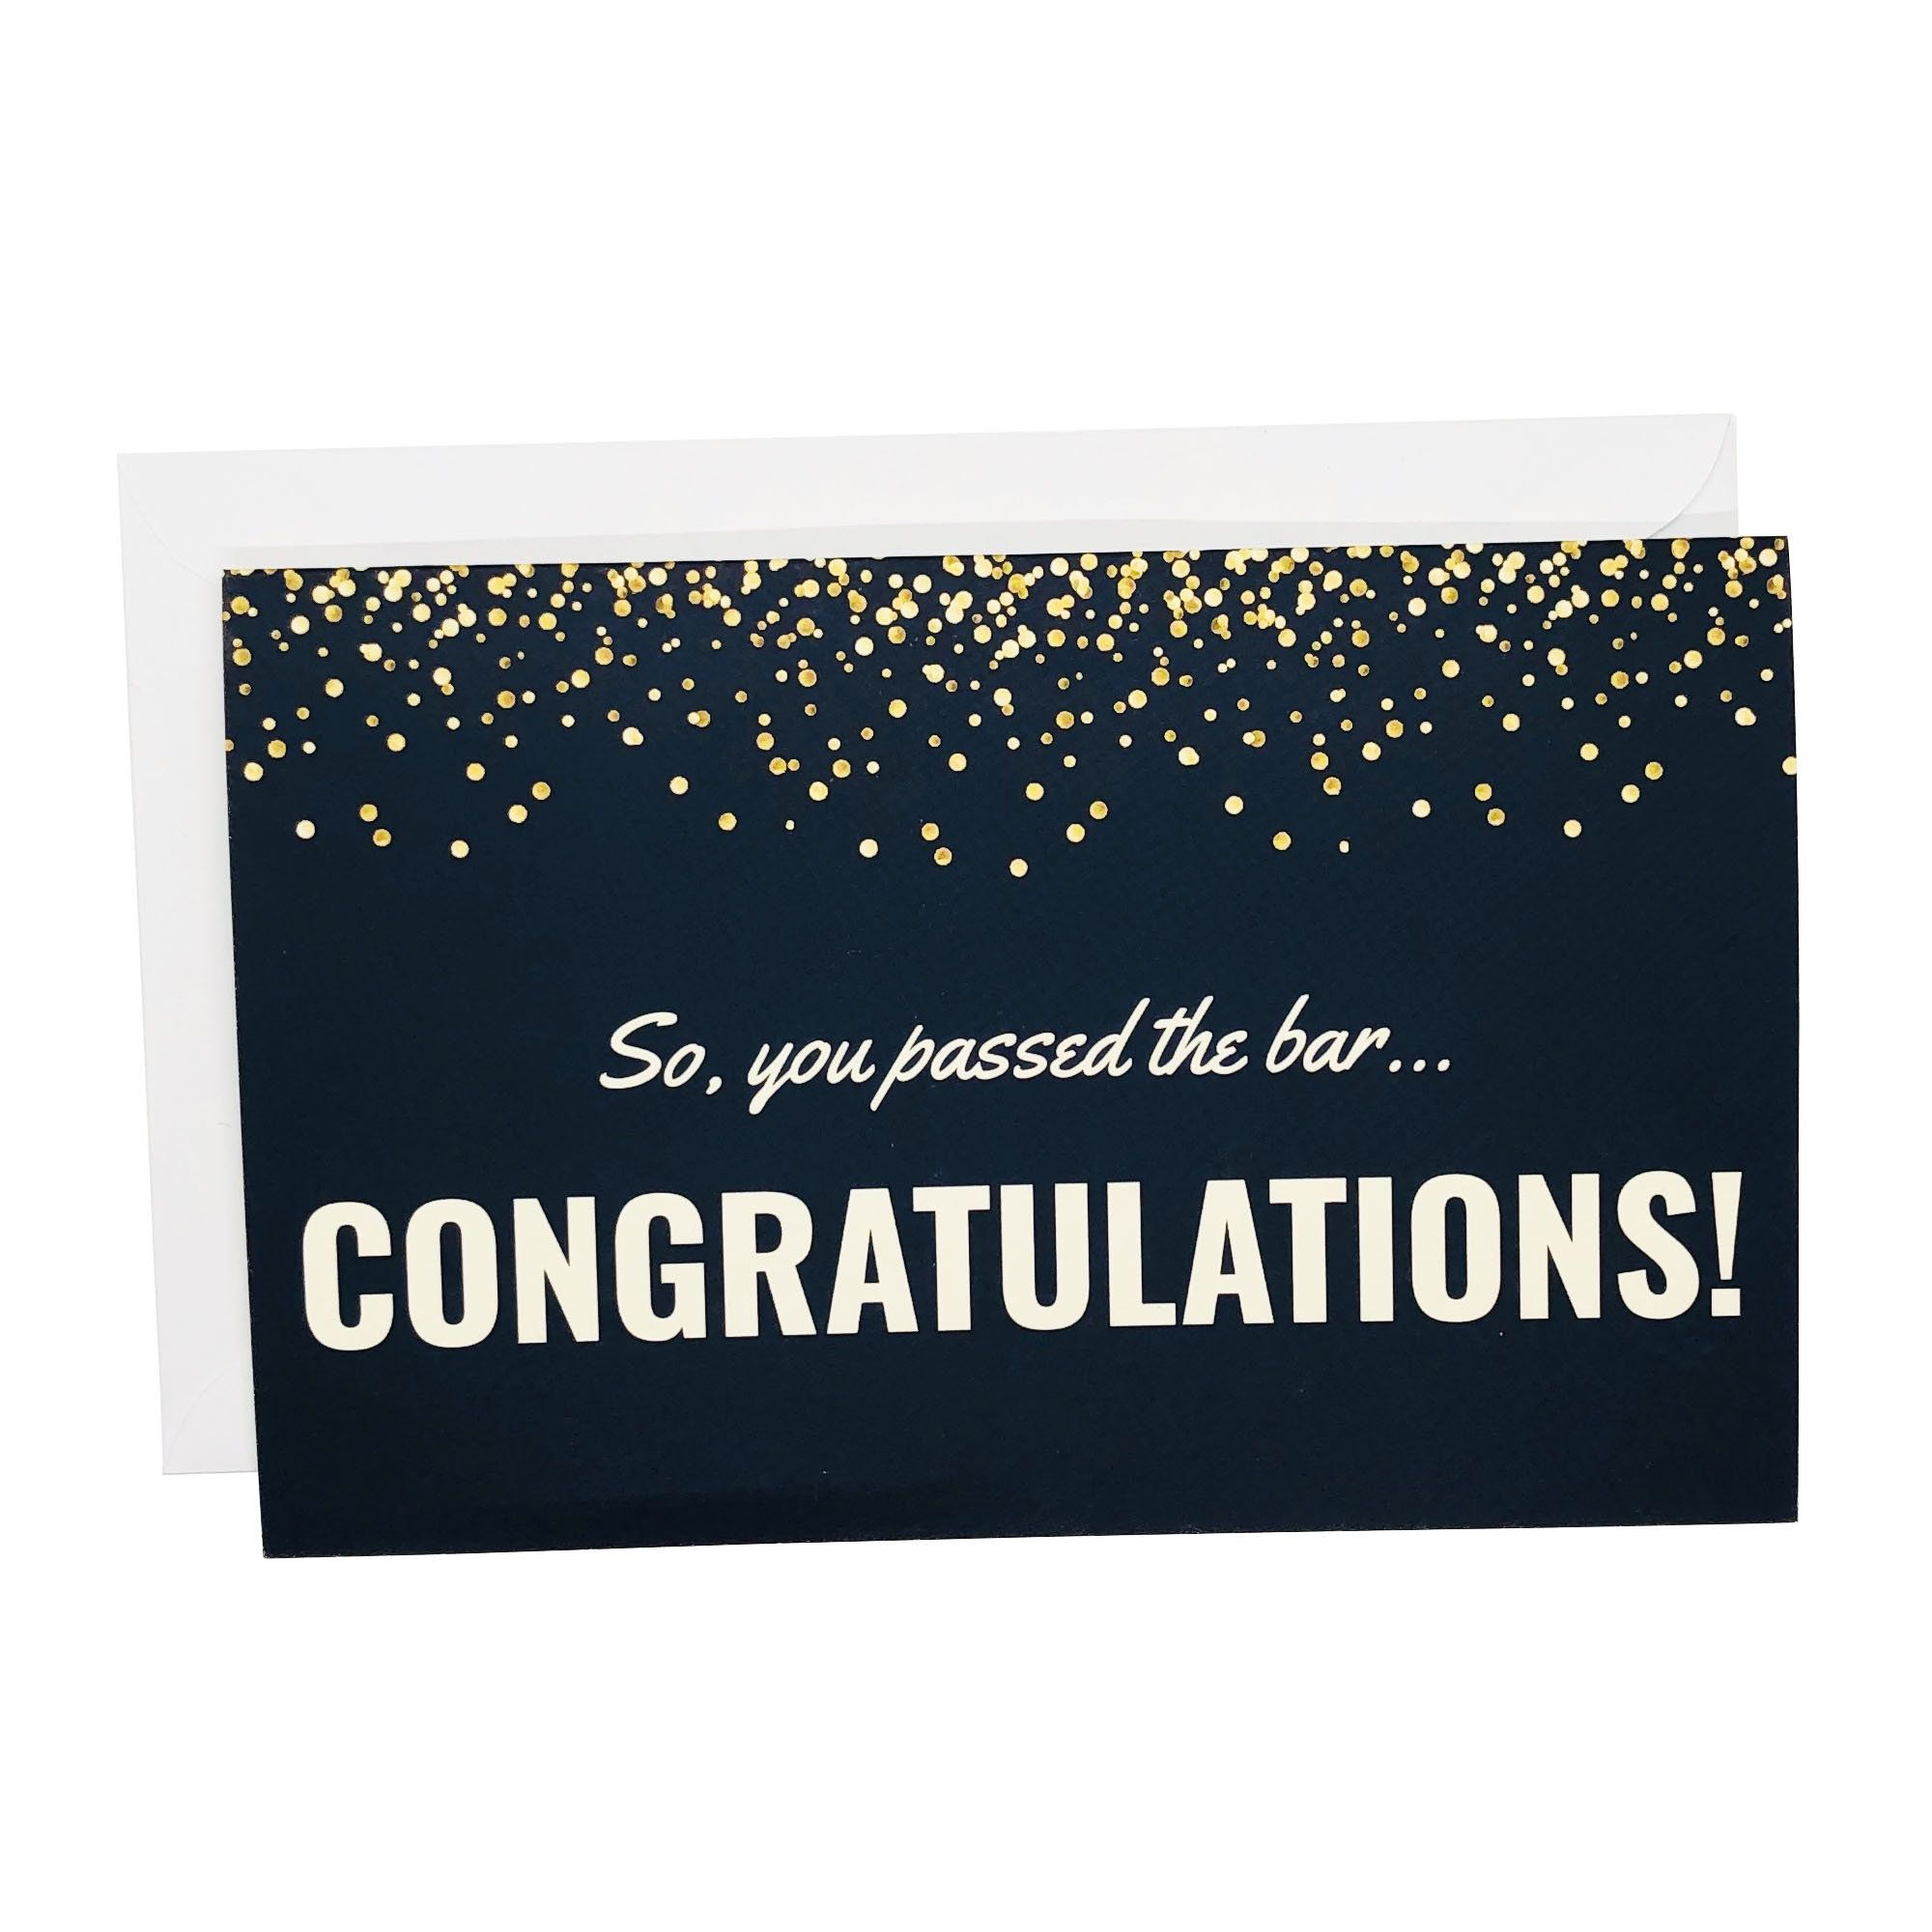 Congrats For Your Hard Work Congratulations Cards Birthday Greeting Cards By Davia In 2021 Congratulations Card New Business Quotes Greeting Cards Quotes